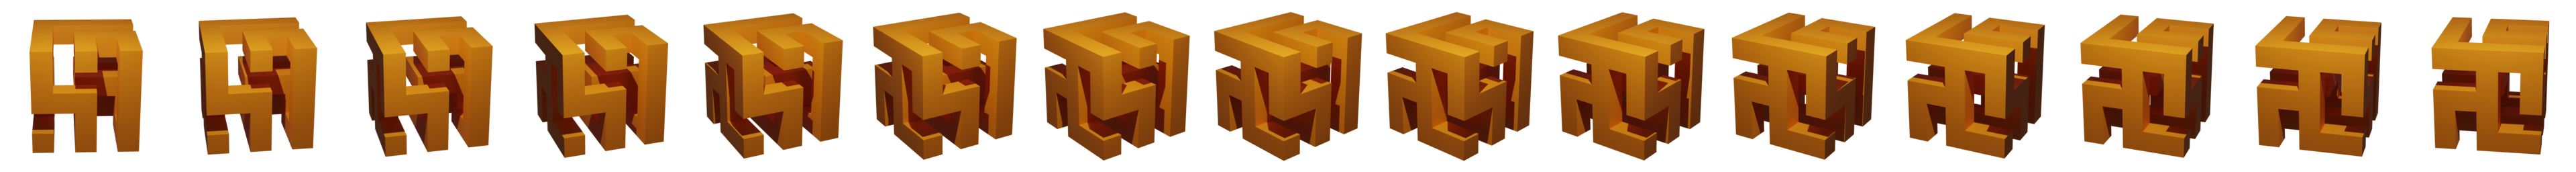 horizontal rule made up of an orange rotating maze cube